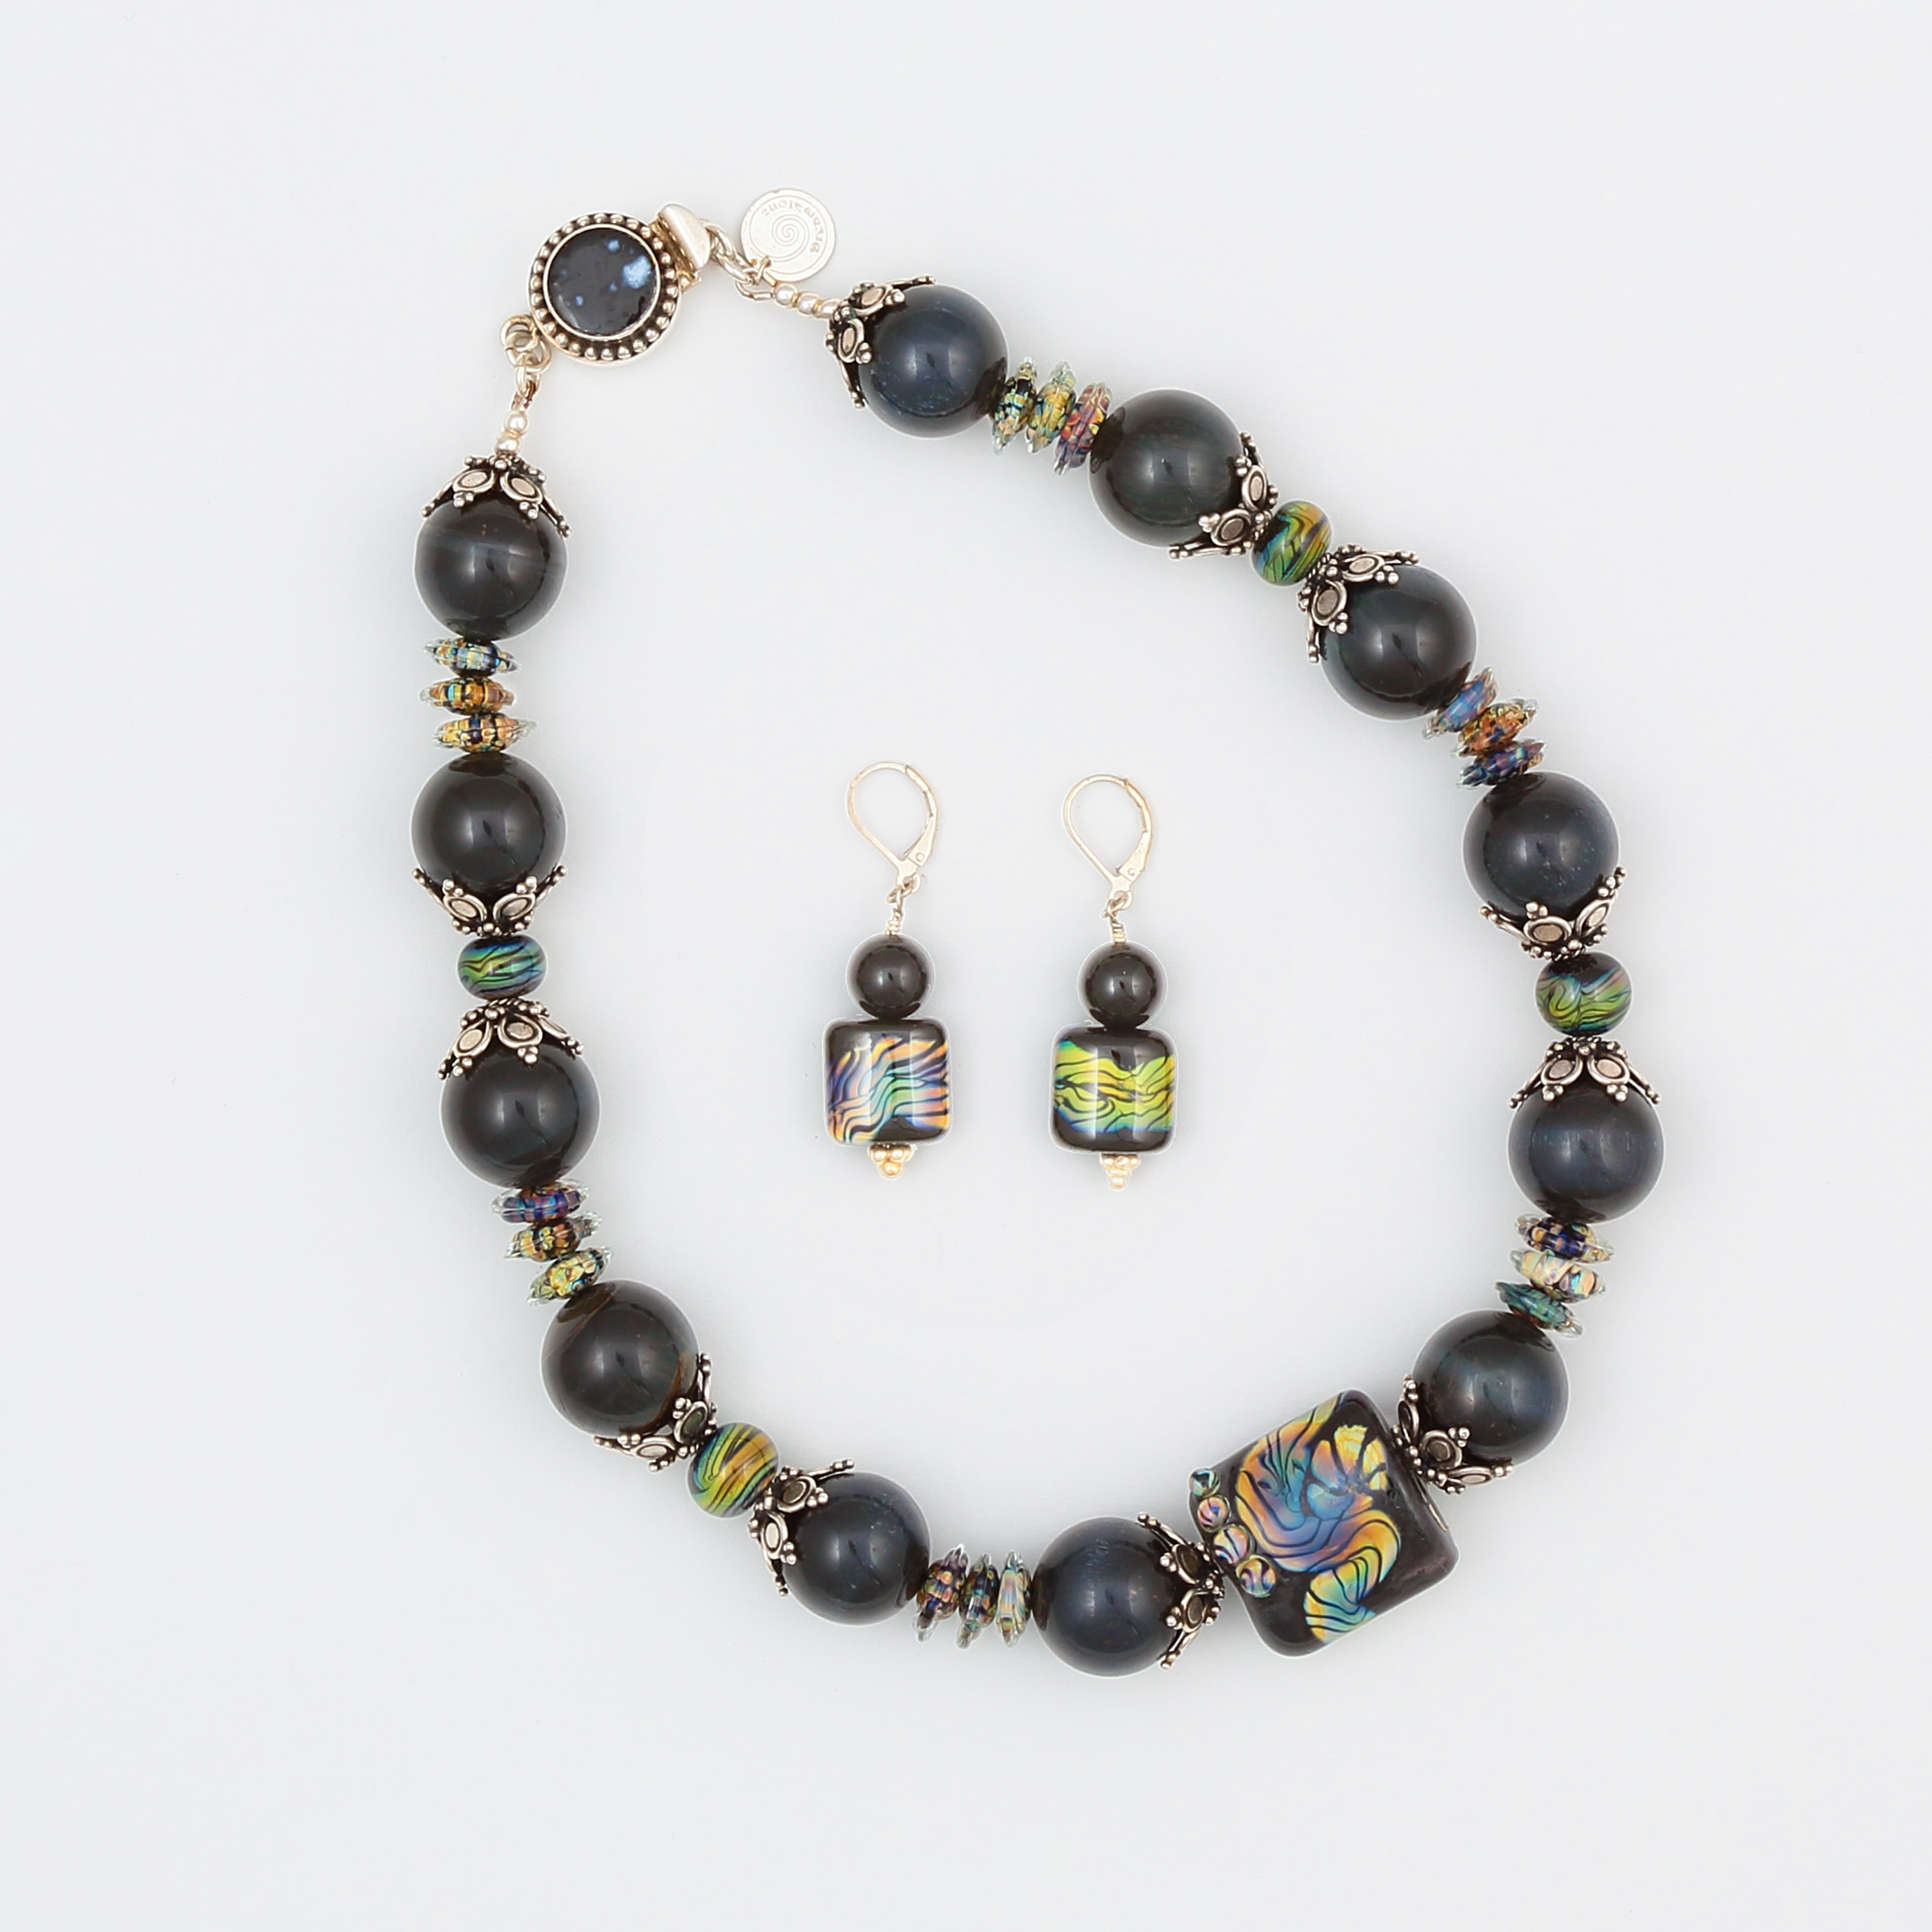 Statement necklace – earrings in blue tiger's eye gemstone and art glass